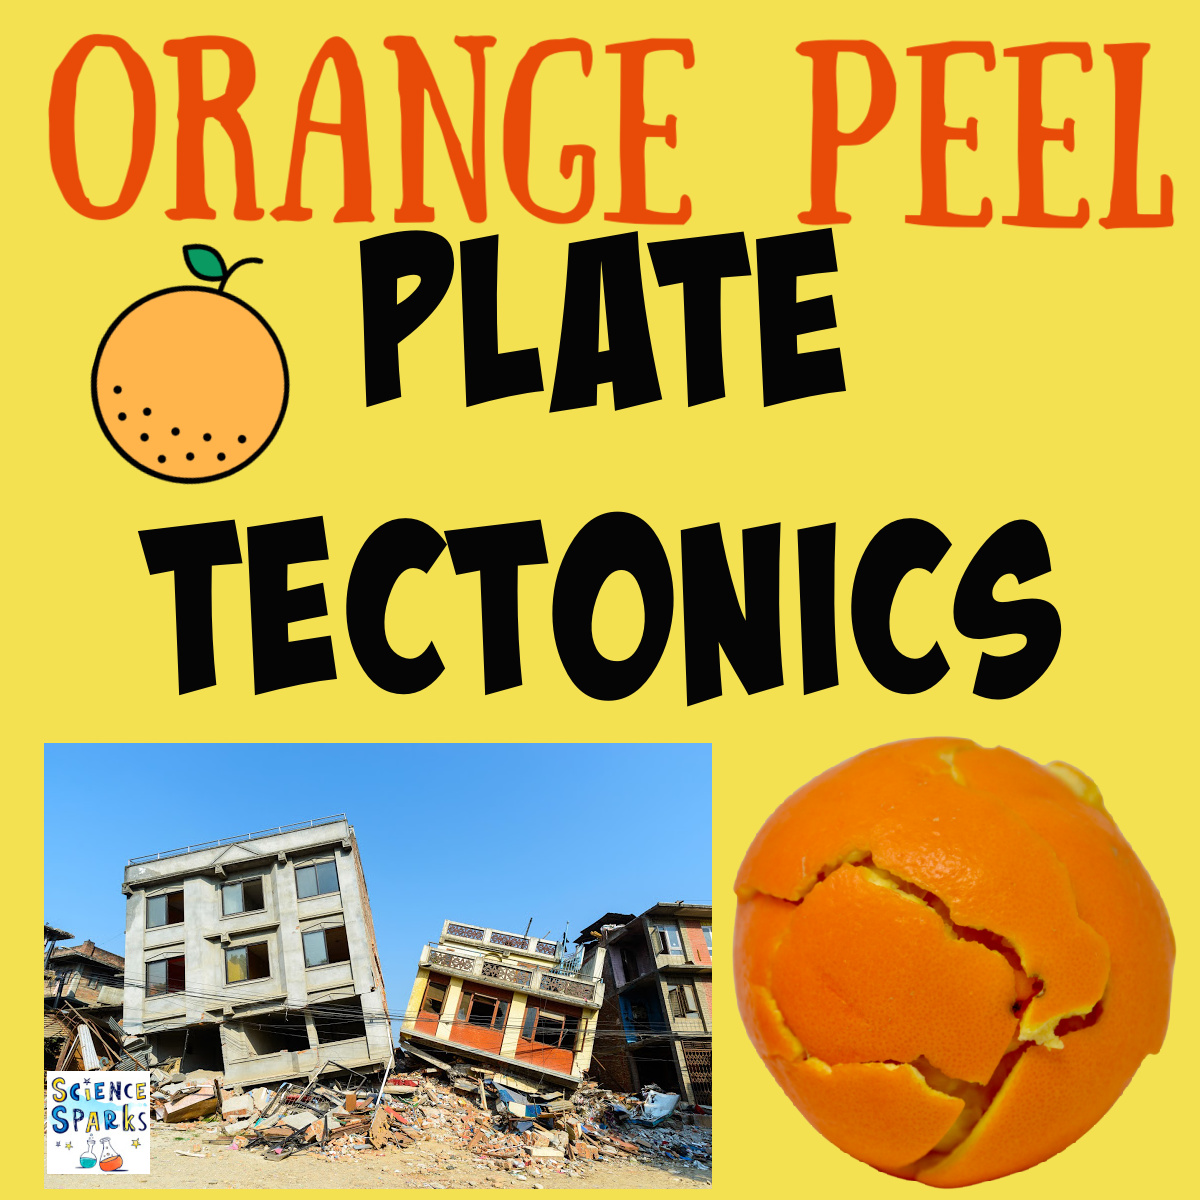 collage of an orange and earthquake images for a science experiment